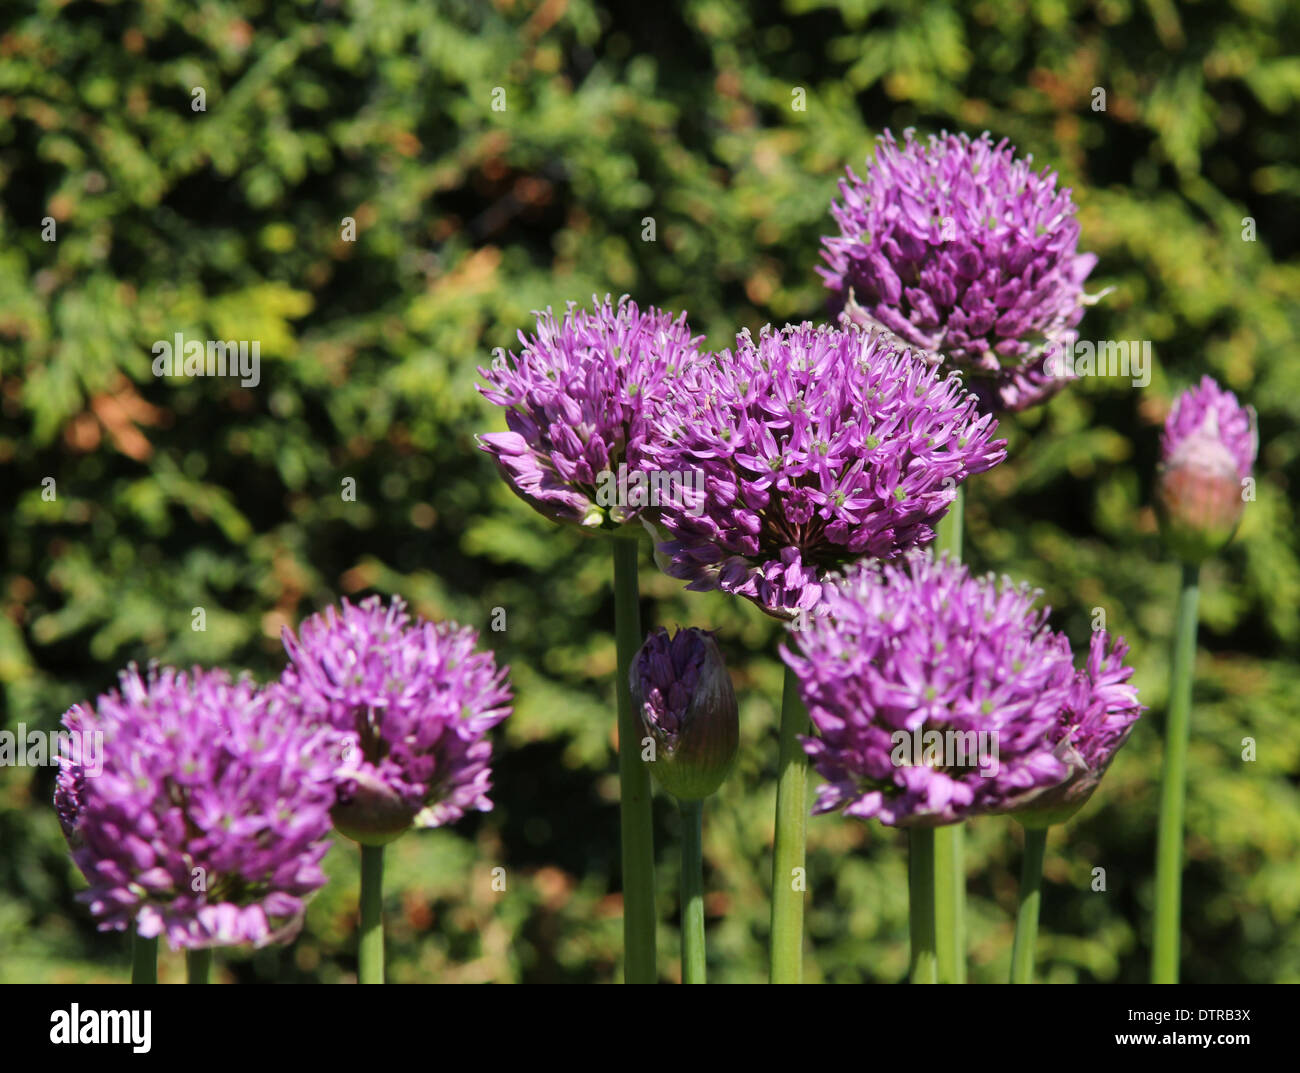 7 purple Aliums  in a group conifer background (2 of series of 2) - Stock Image